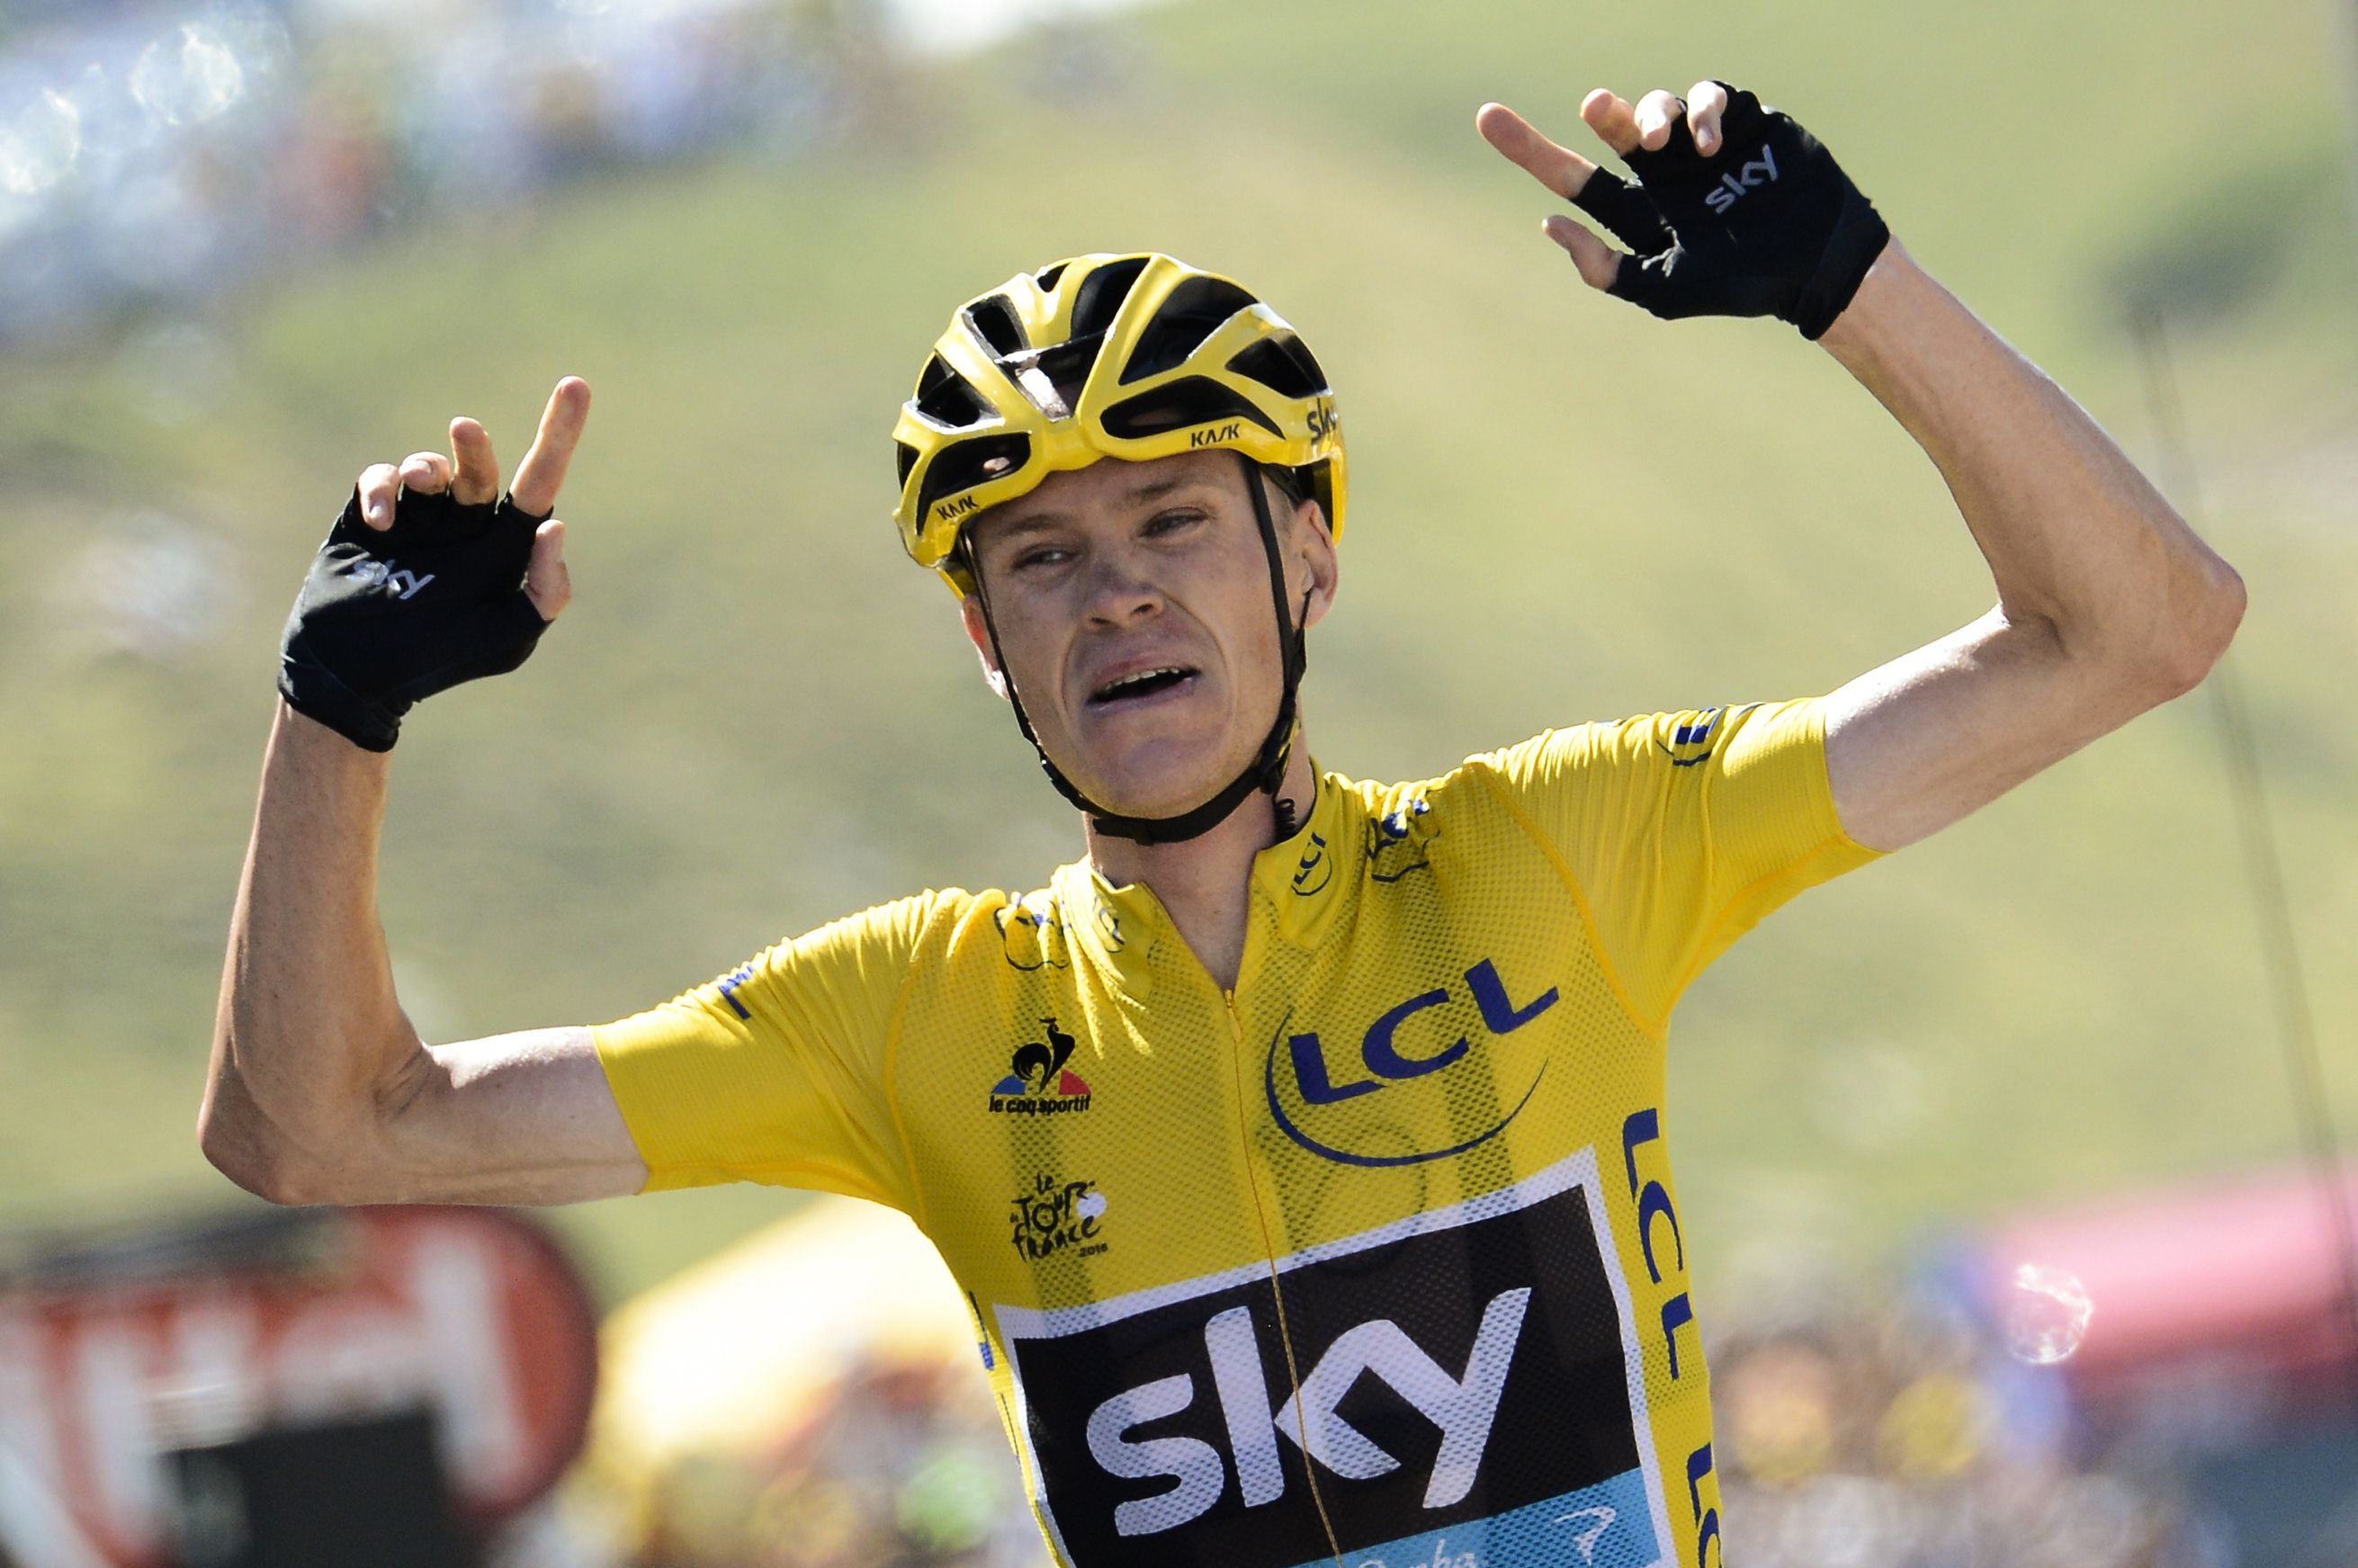 Great Britain's Christopher Froome celebrates as he crosses the finish line at the end of the 167 km tenth stage of the 102nd edition of the Tour de France cycling race on July 14, 2015, between Tarbes and La Pierre-Saint-Martin, southwestern France.  Photo: AFP